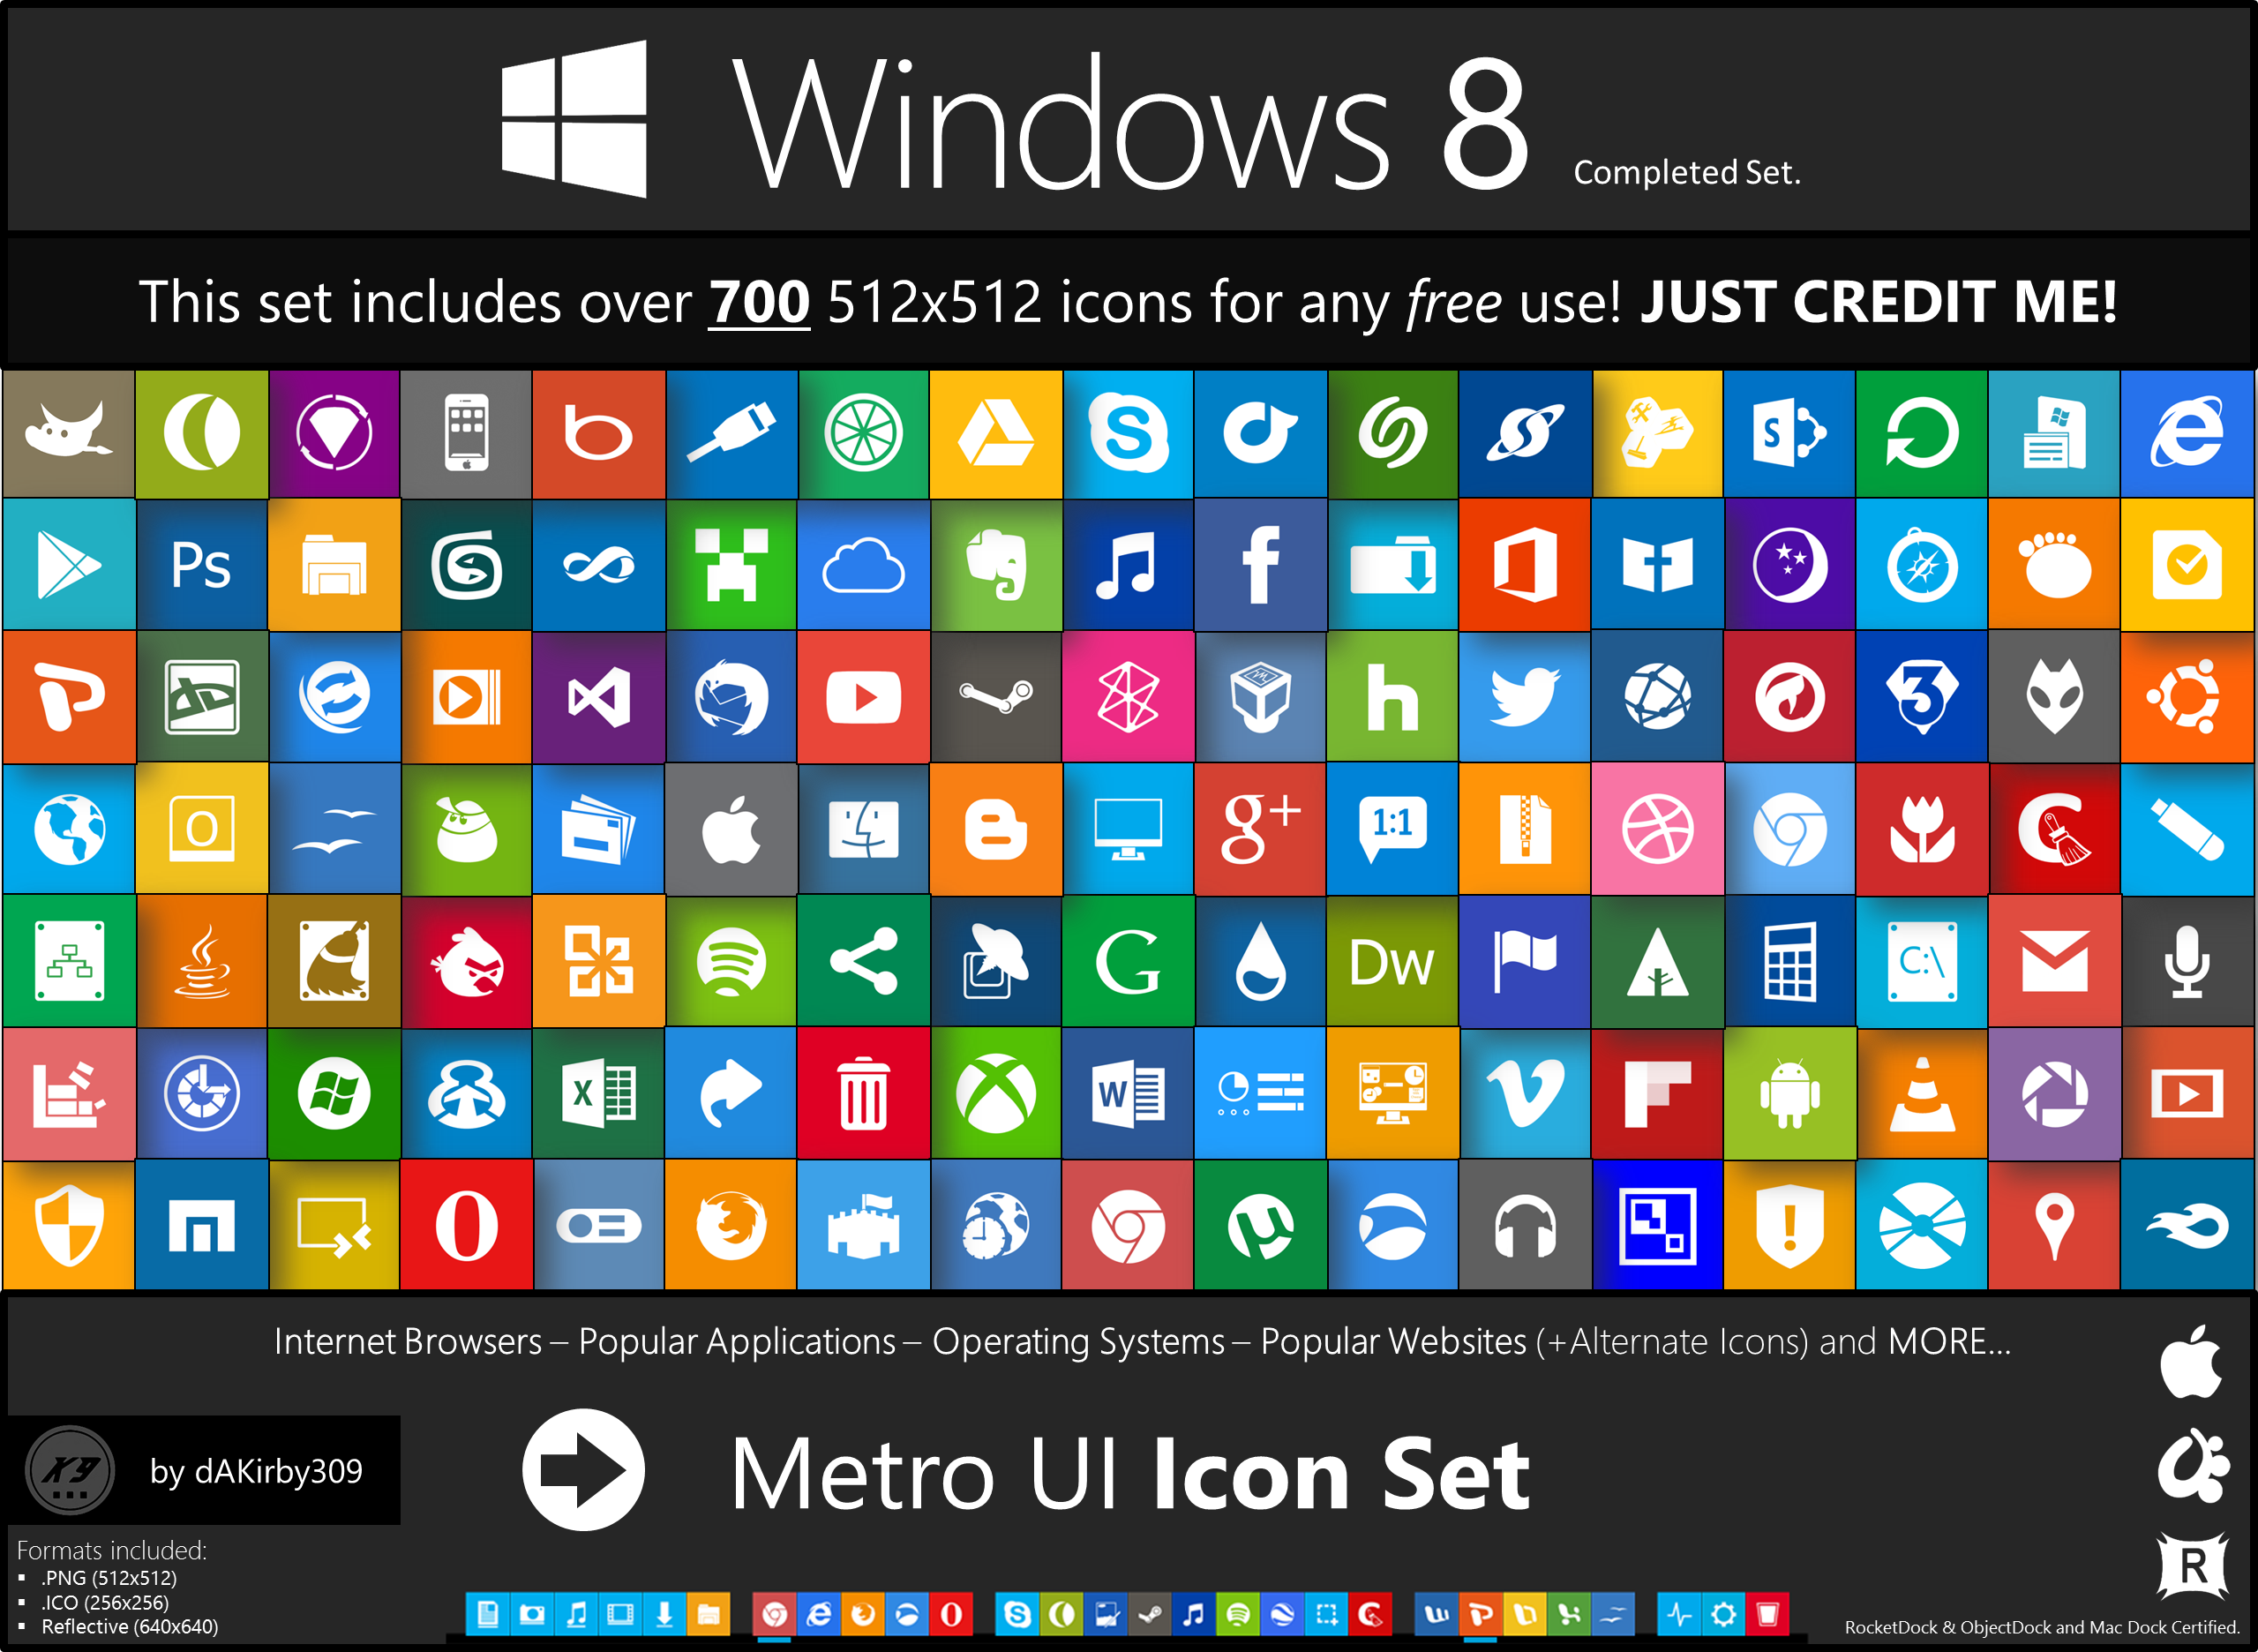 Metro UI Icon Set - 725 Icons by dAKirby309